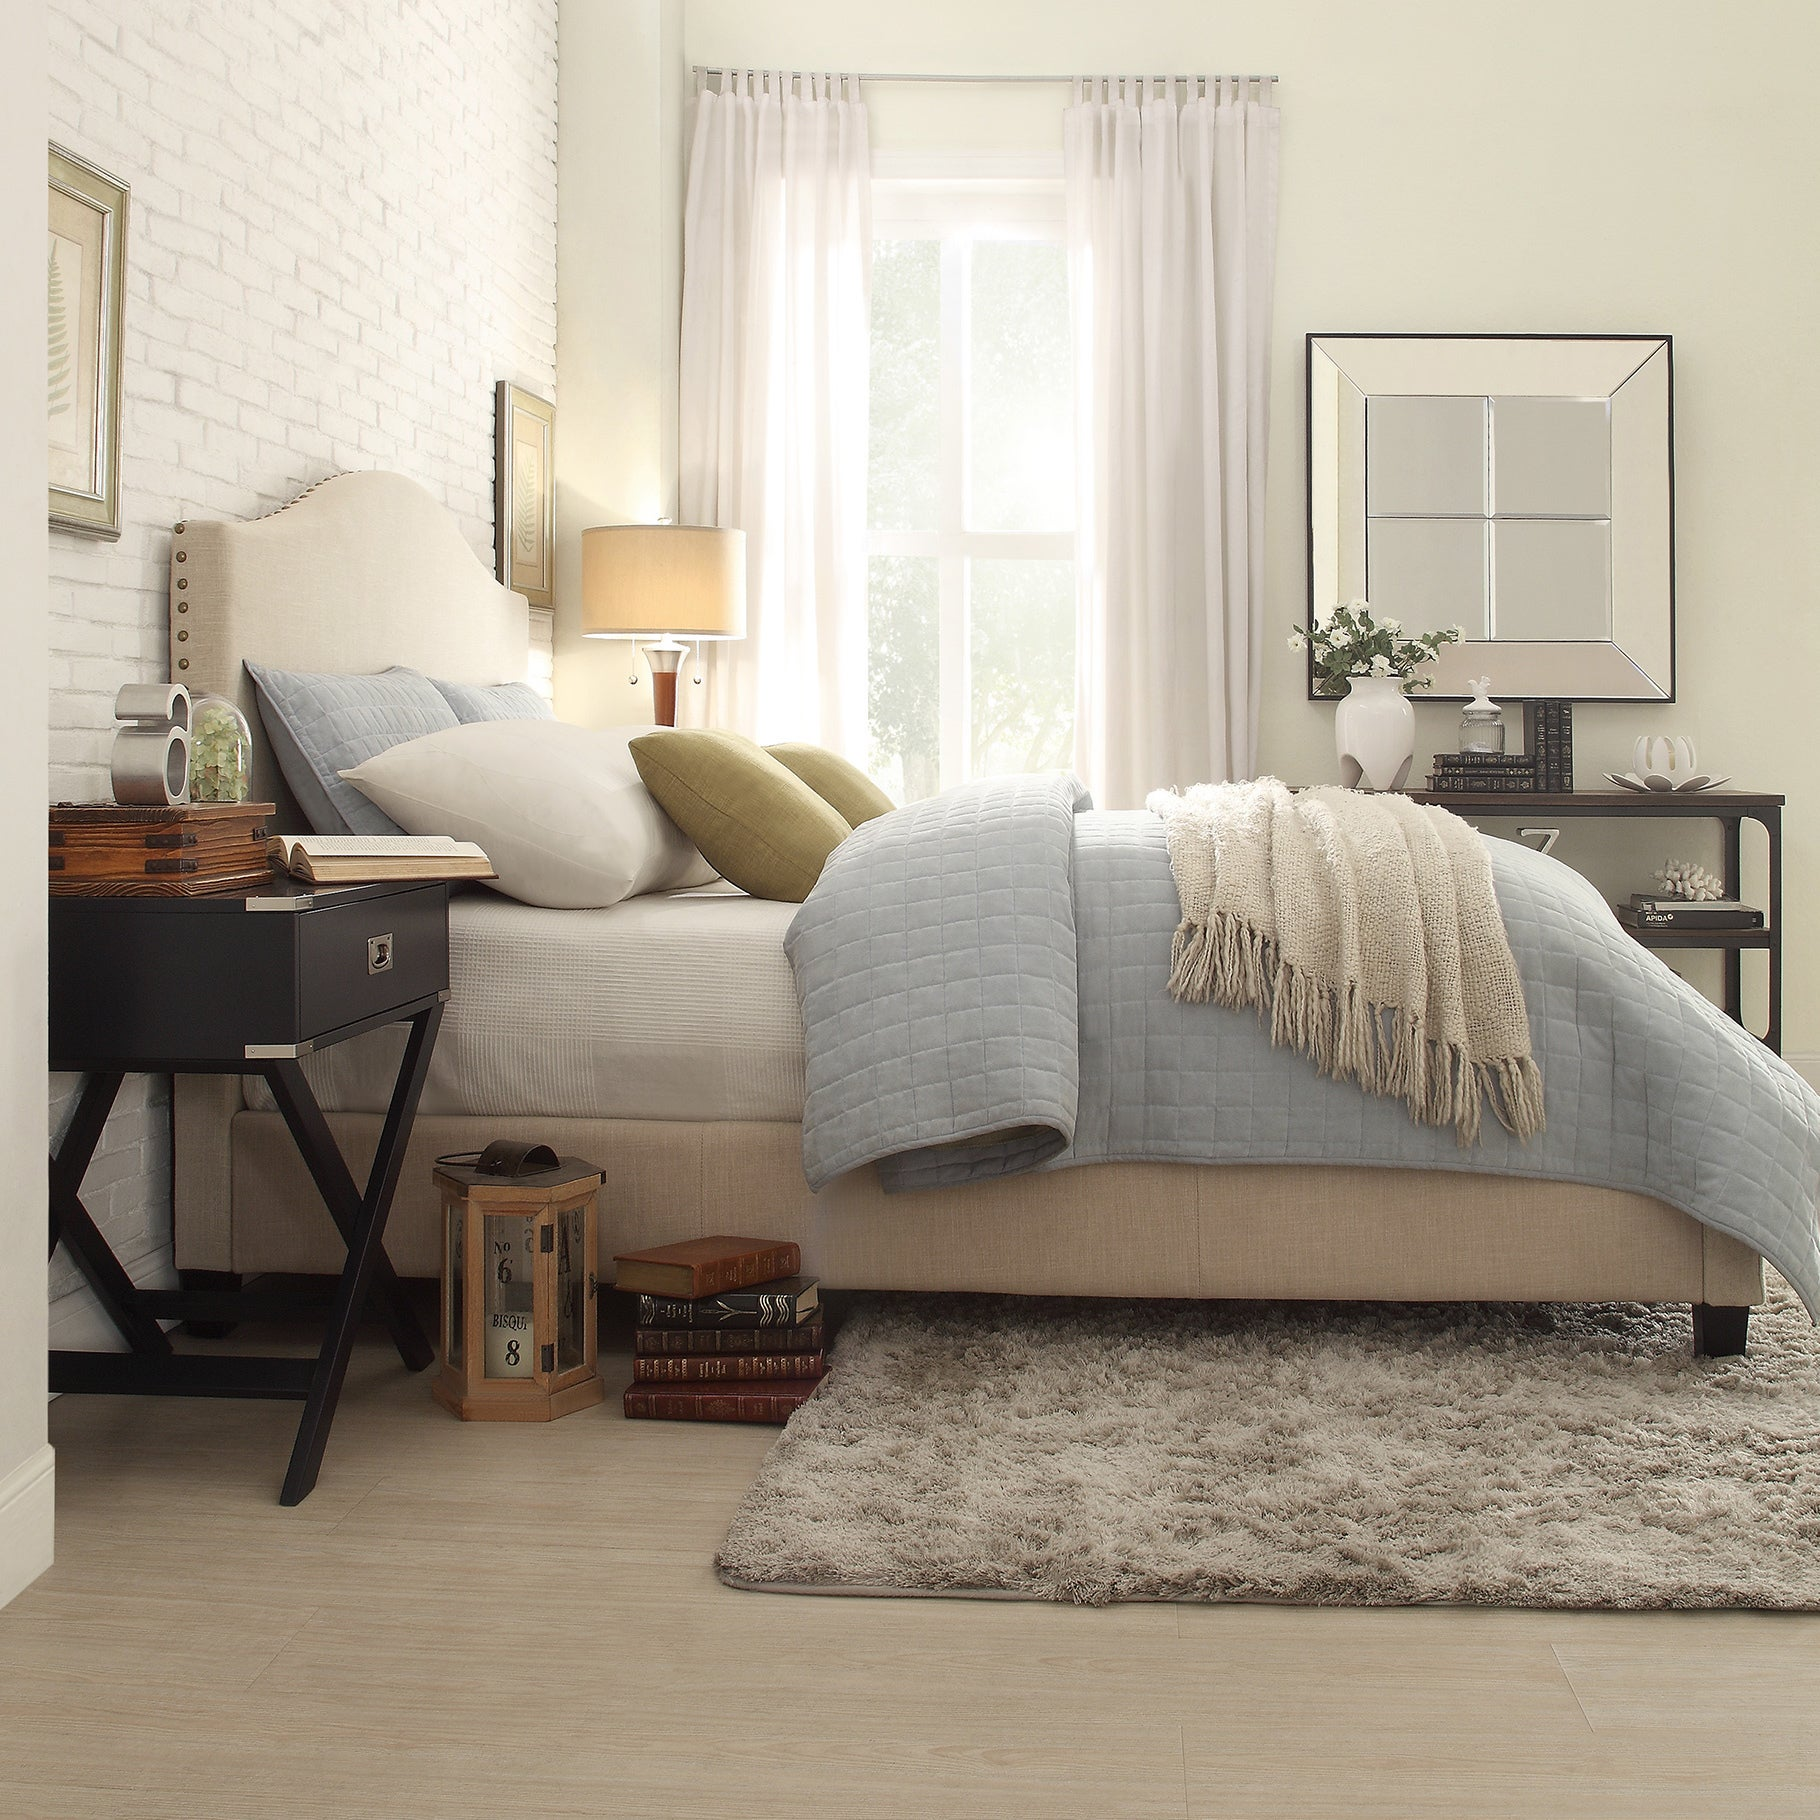 Blanchard Nailhead Camelback Upholstered Queen-size Bed by iNSPIRE Q Bold -  Free Shipping Today - Overstock.com - 17150379